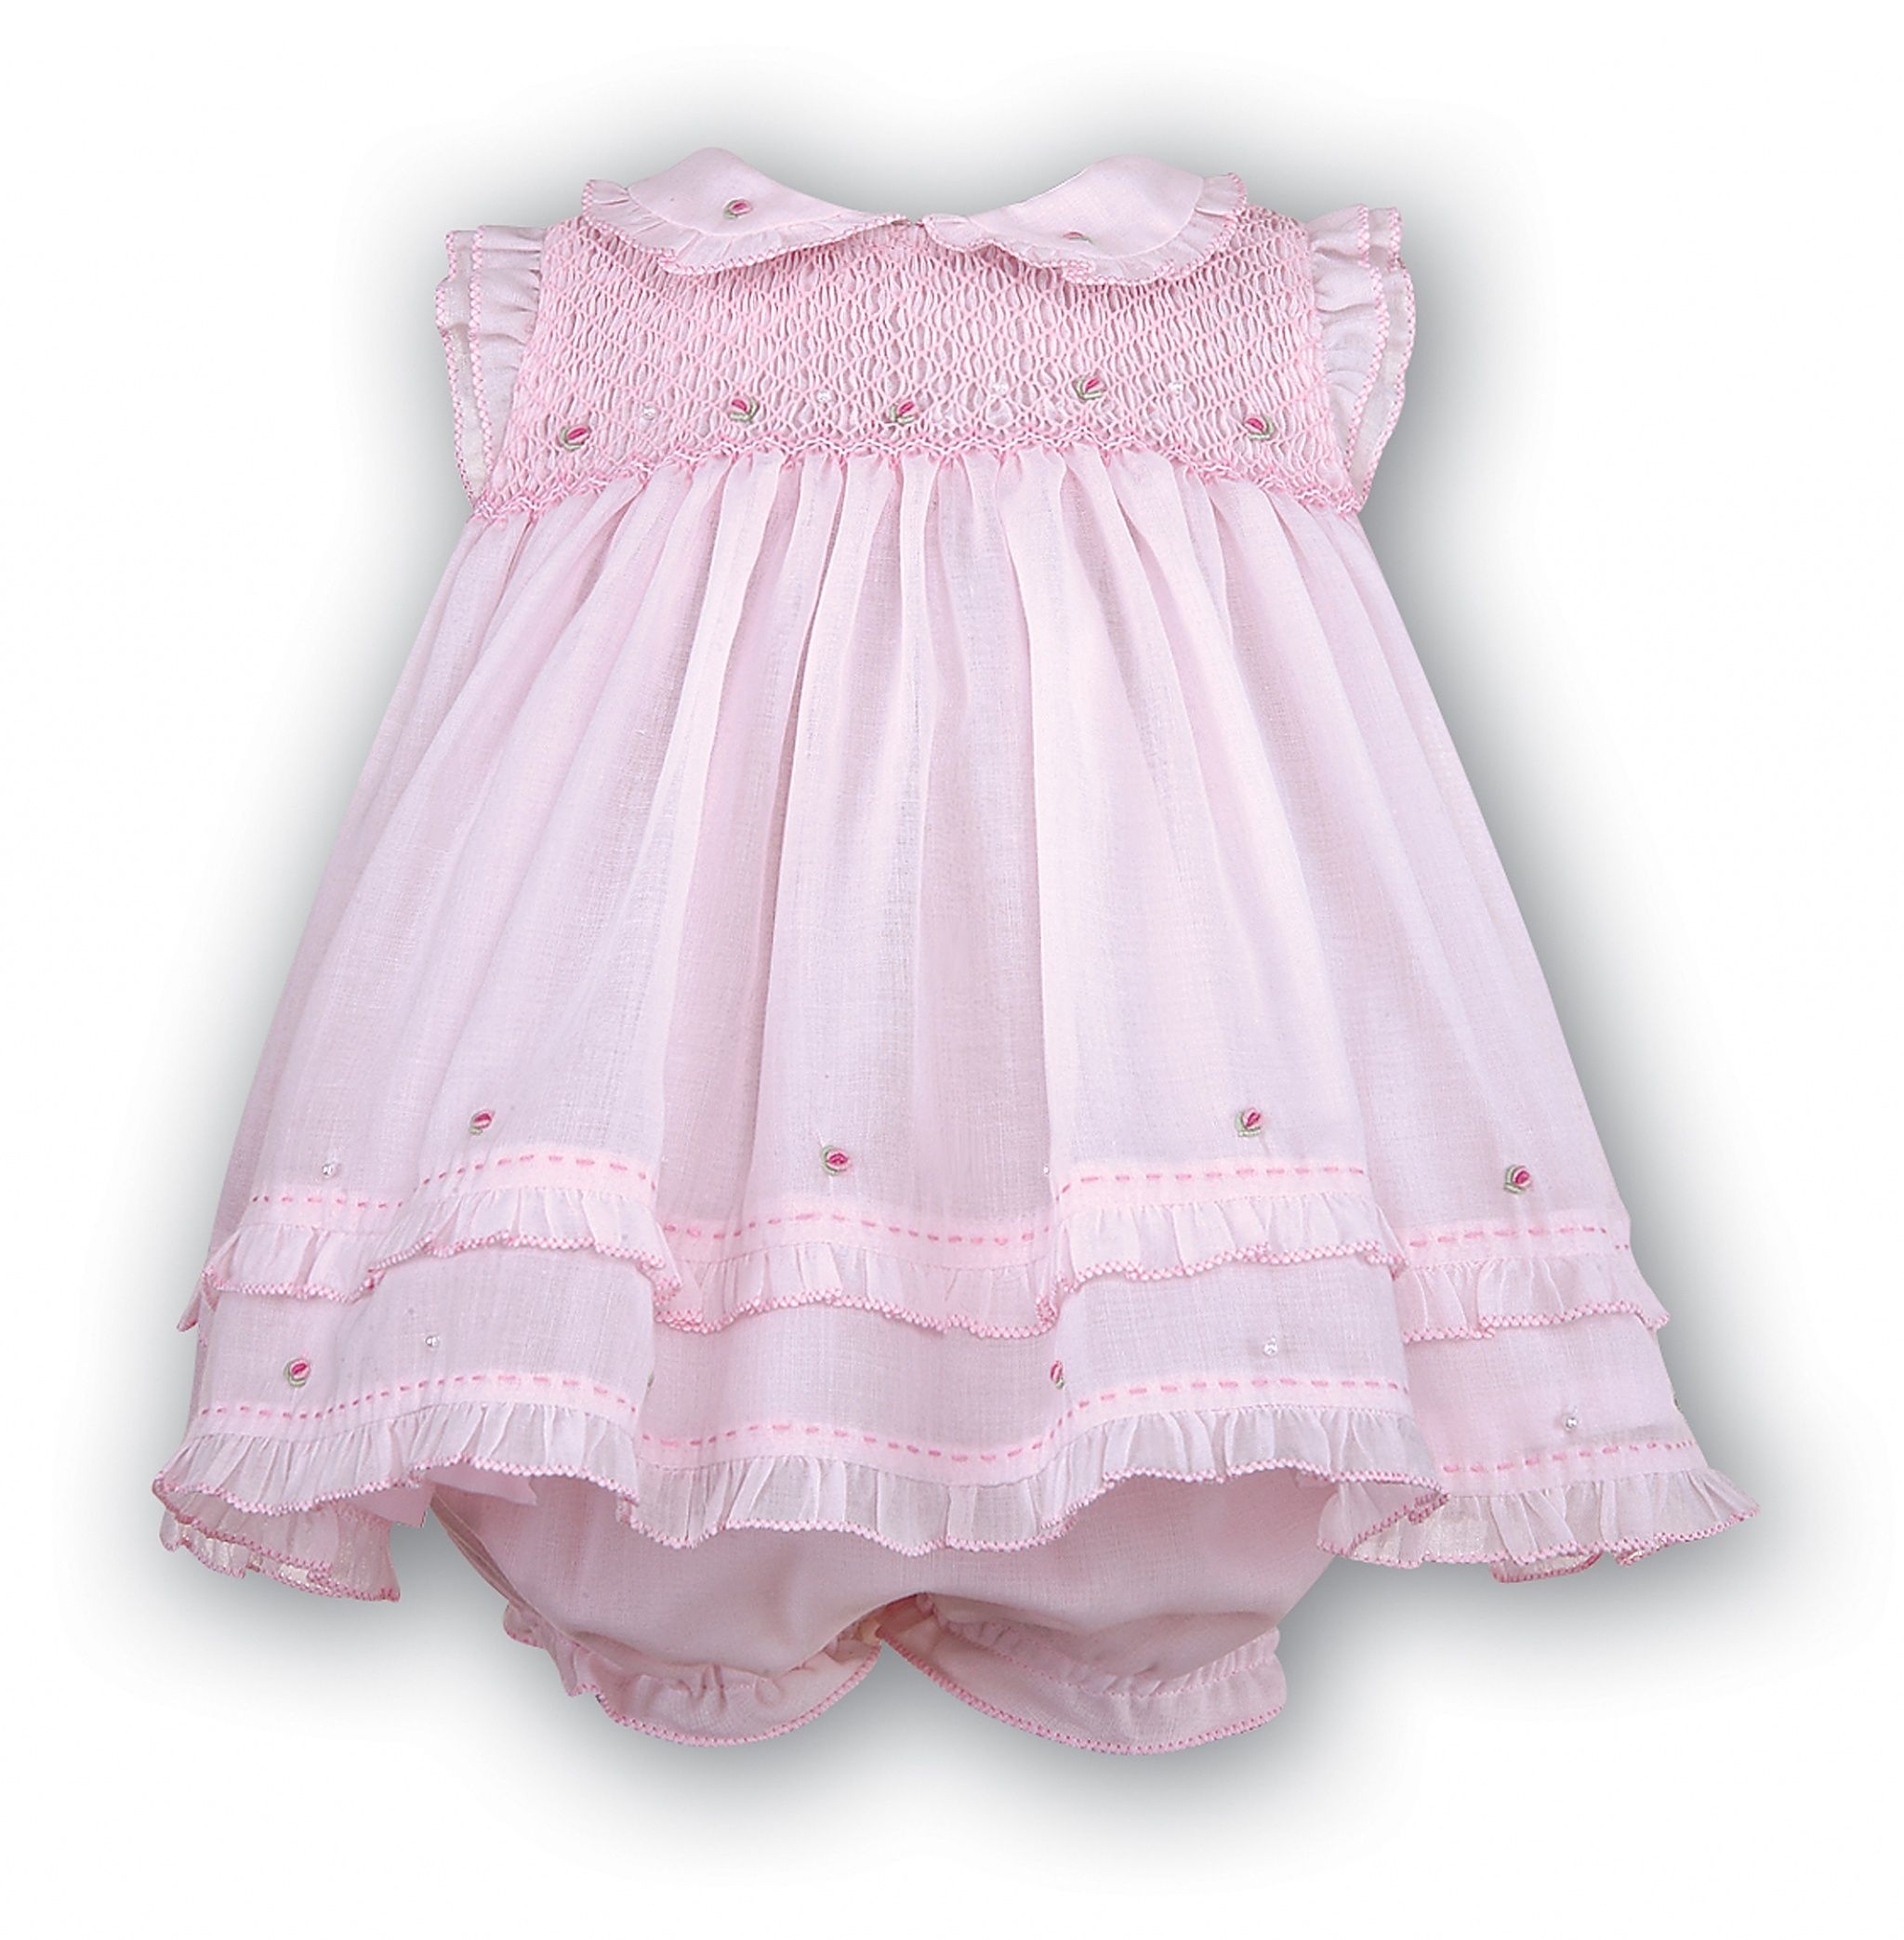 Girls & Children\'s Pink Newborn Baby Girl | Adams Kids Clothing ...